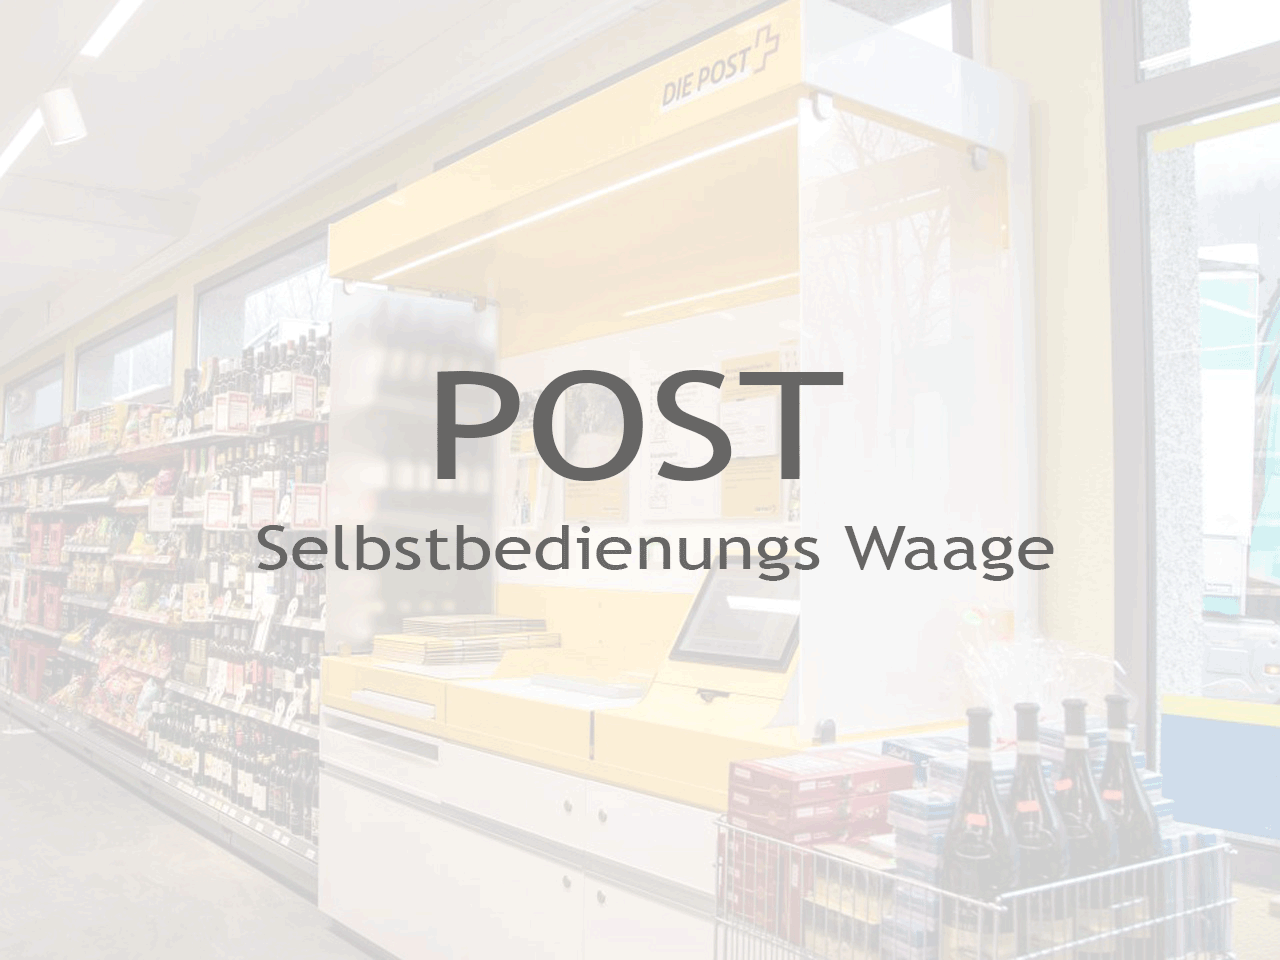 Post Selbstbedienungs Waage - Inputech DESIGN